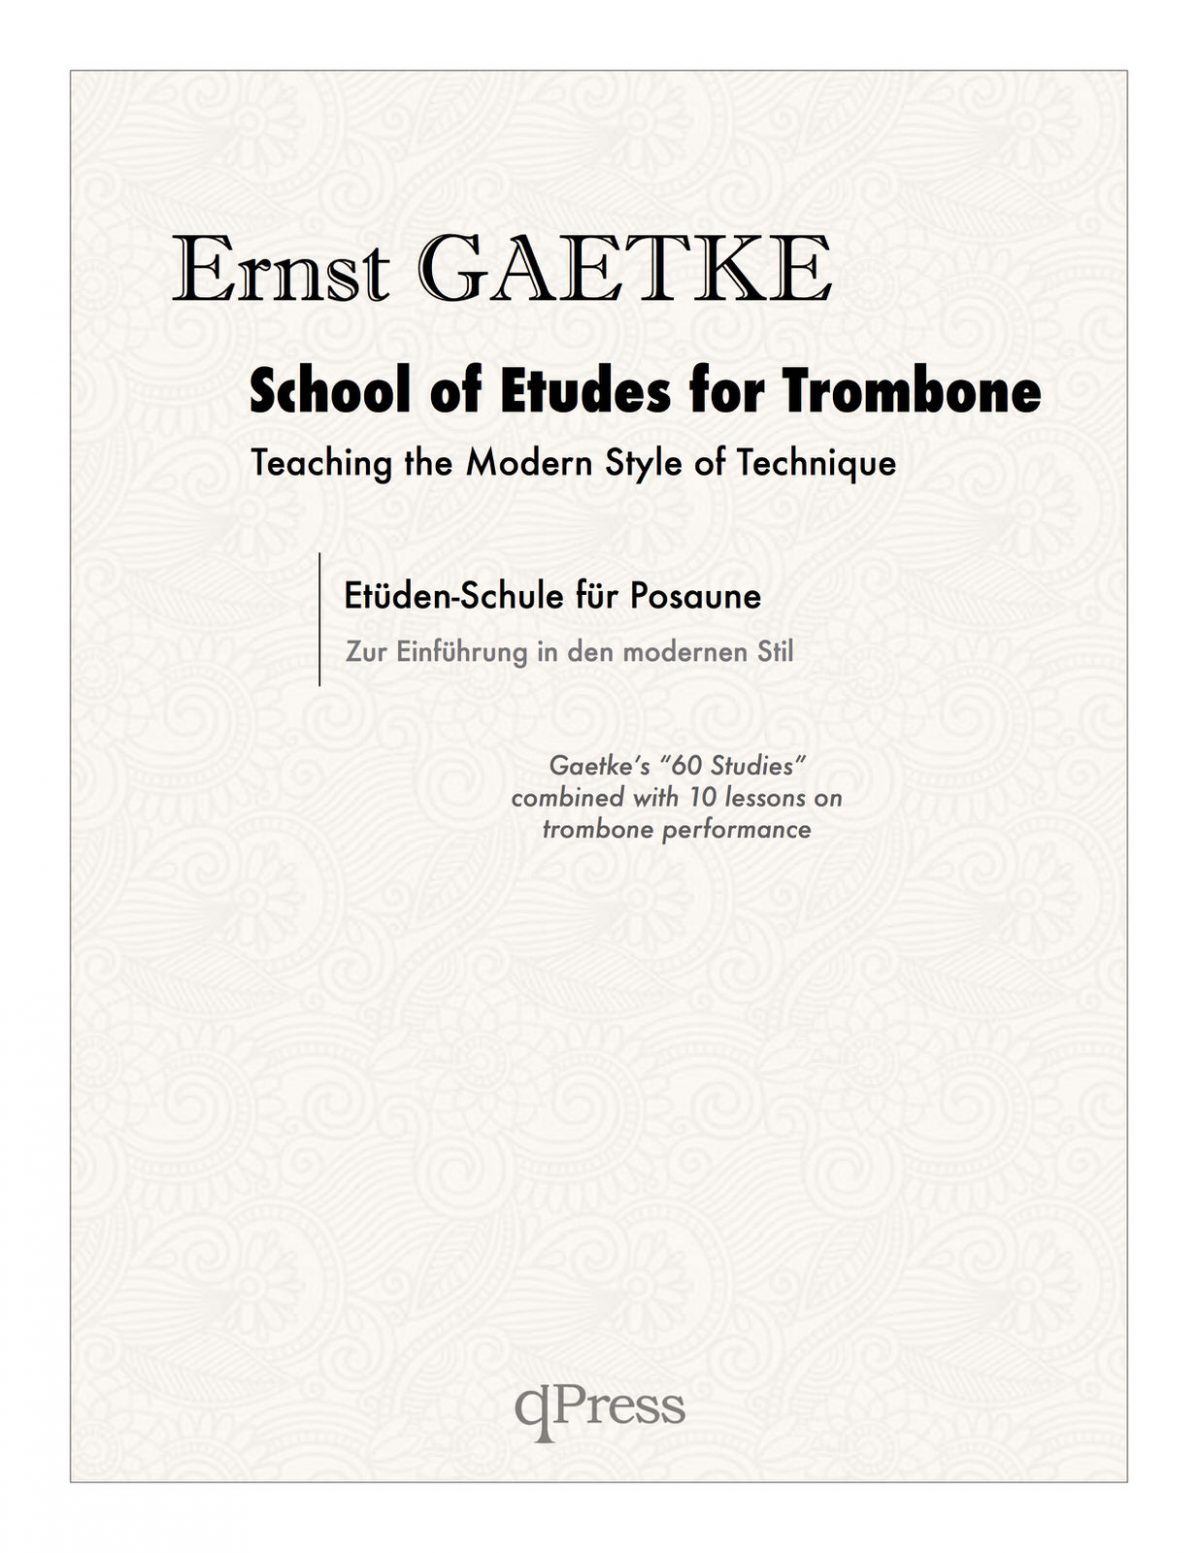 gaetke-school-of-etudes-for-trombone